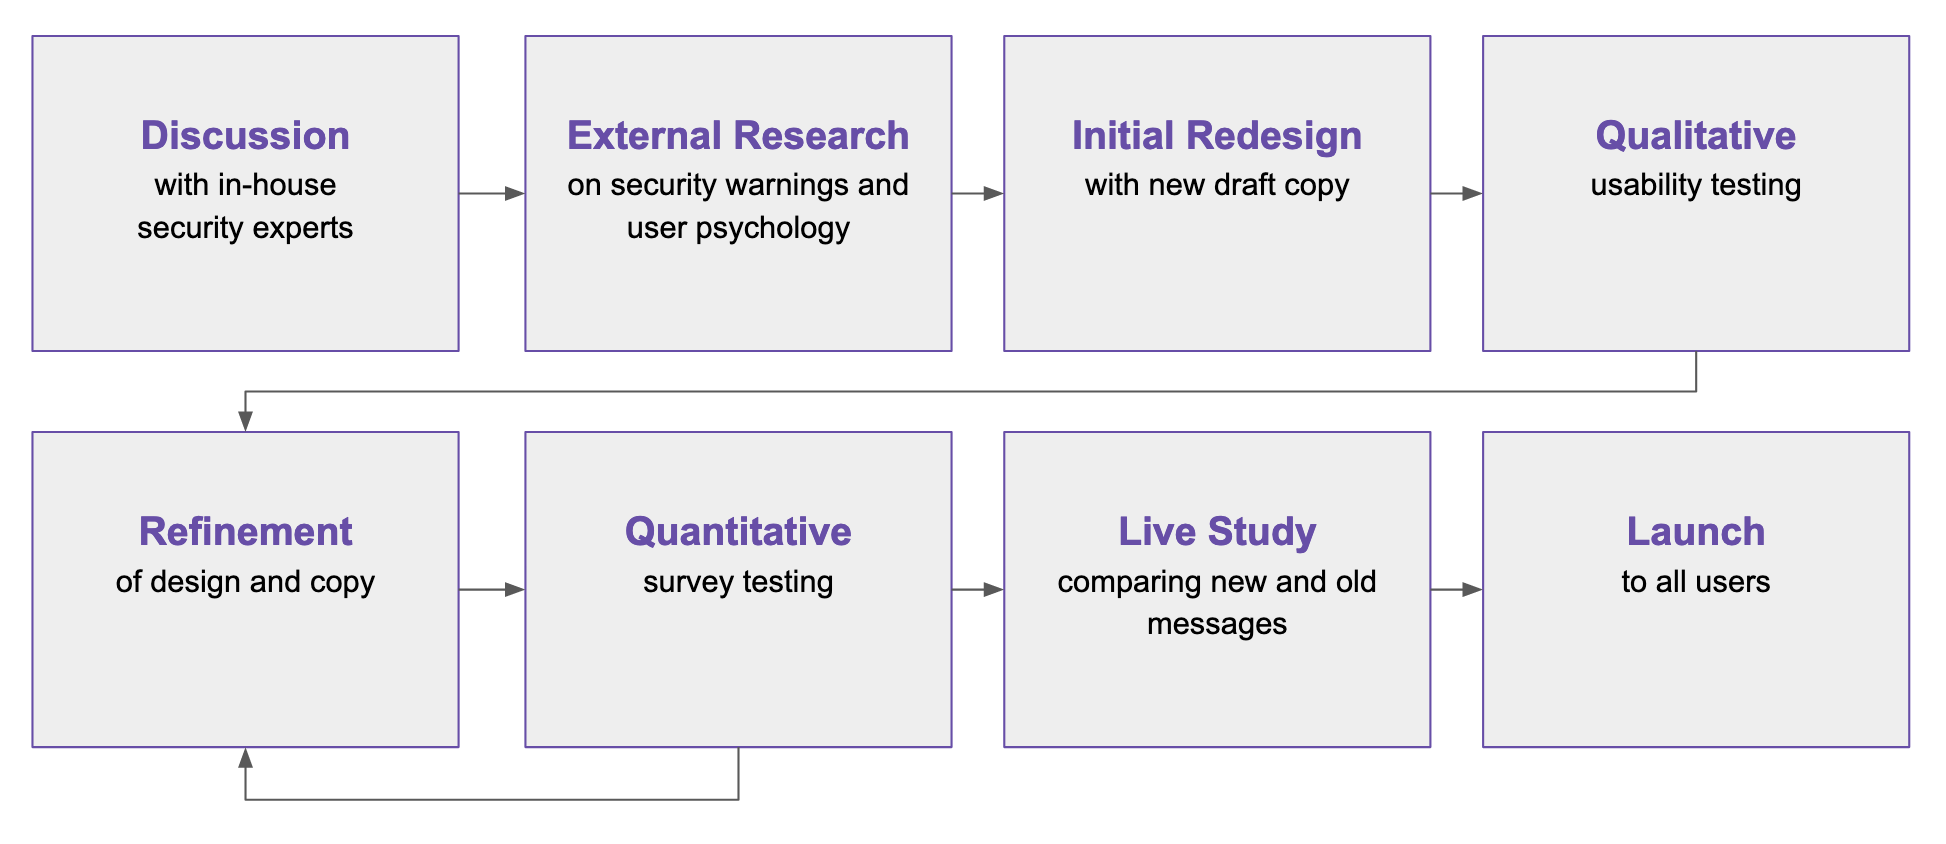 Eight gray boxes with connecting arrows illustrate the process of creating new error messages. Box 1: Discussion with in-house security experts. Box 2: External research on security warnings and user psychology. Box 3: Initial redesign with new draft copy. Box 4: Qualitative usability testing. Box 5: Refinement of design and copy. Box 6: Quantitative survey testing (followed by more refinement of design and copy). Box 7: Live study comparing new and old messages. Box 8: Launch to all users